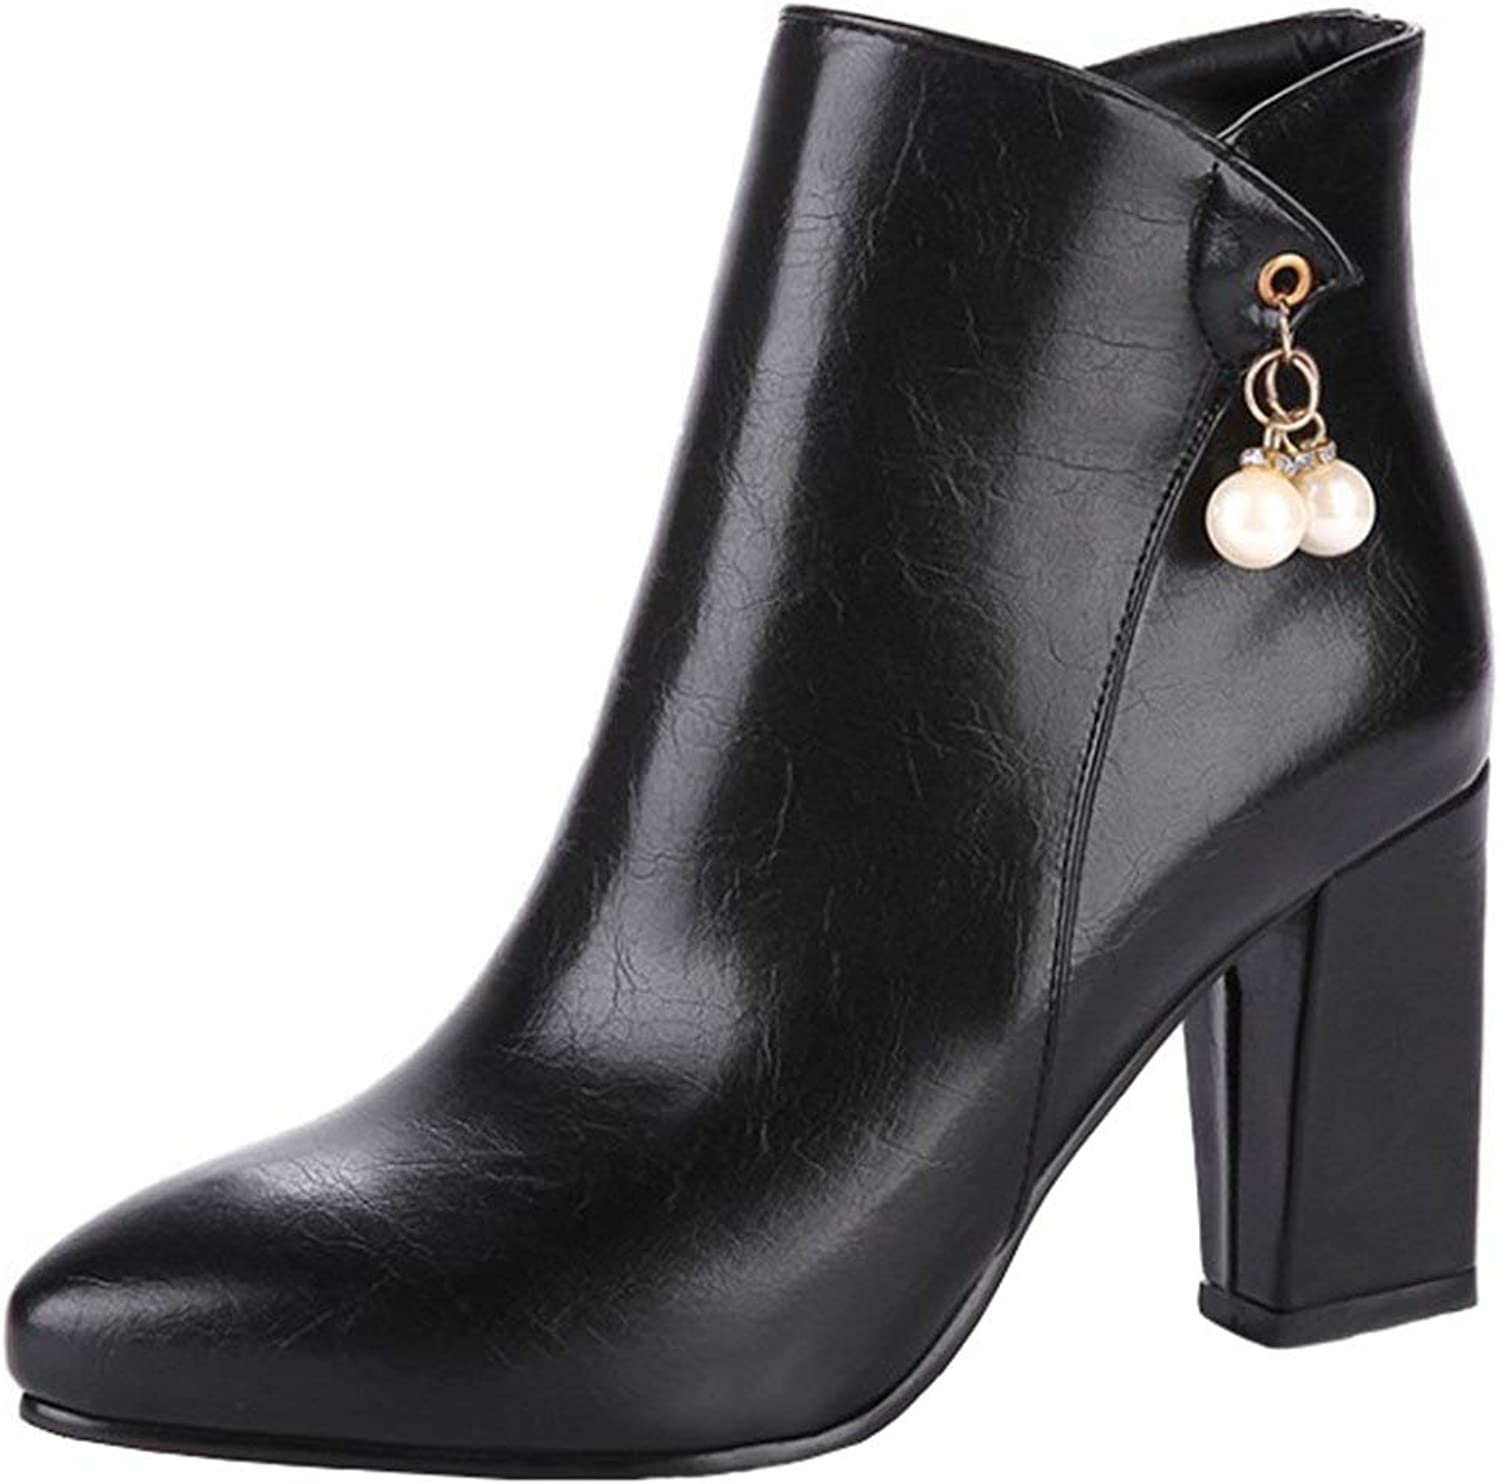 Gedigits Women's Dressy Pendant Side Zipper Ankle Booties Pointed Toe Chunky High Heel Short Boots Black 7.5 M US